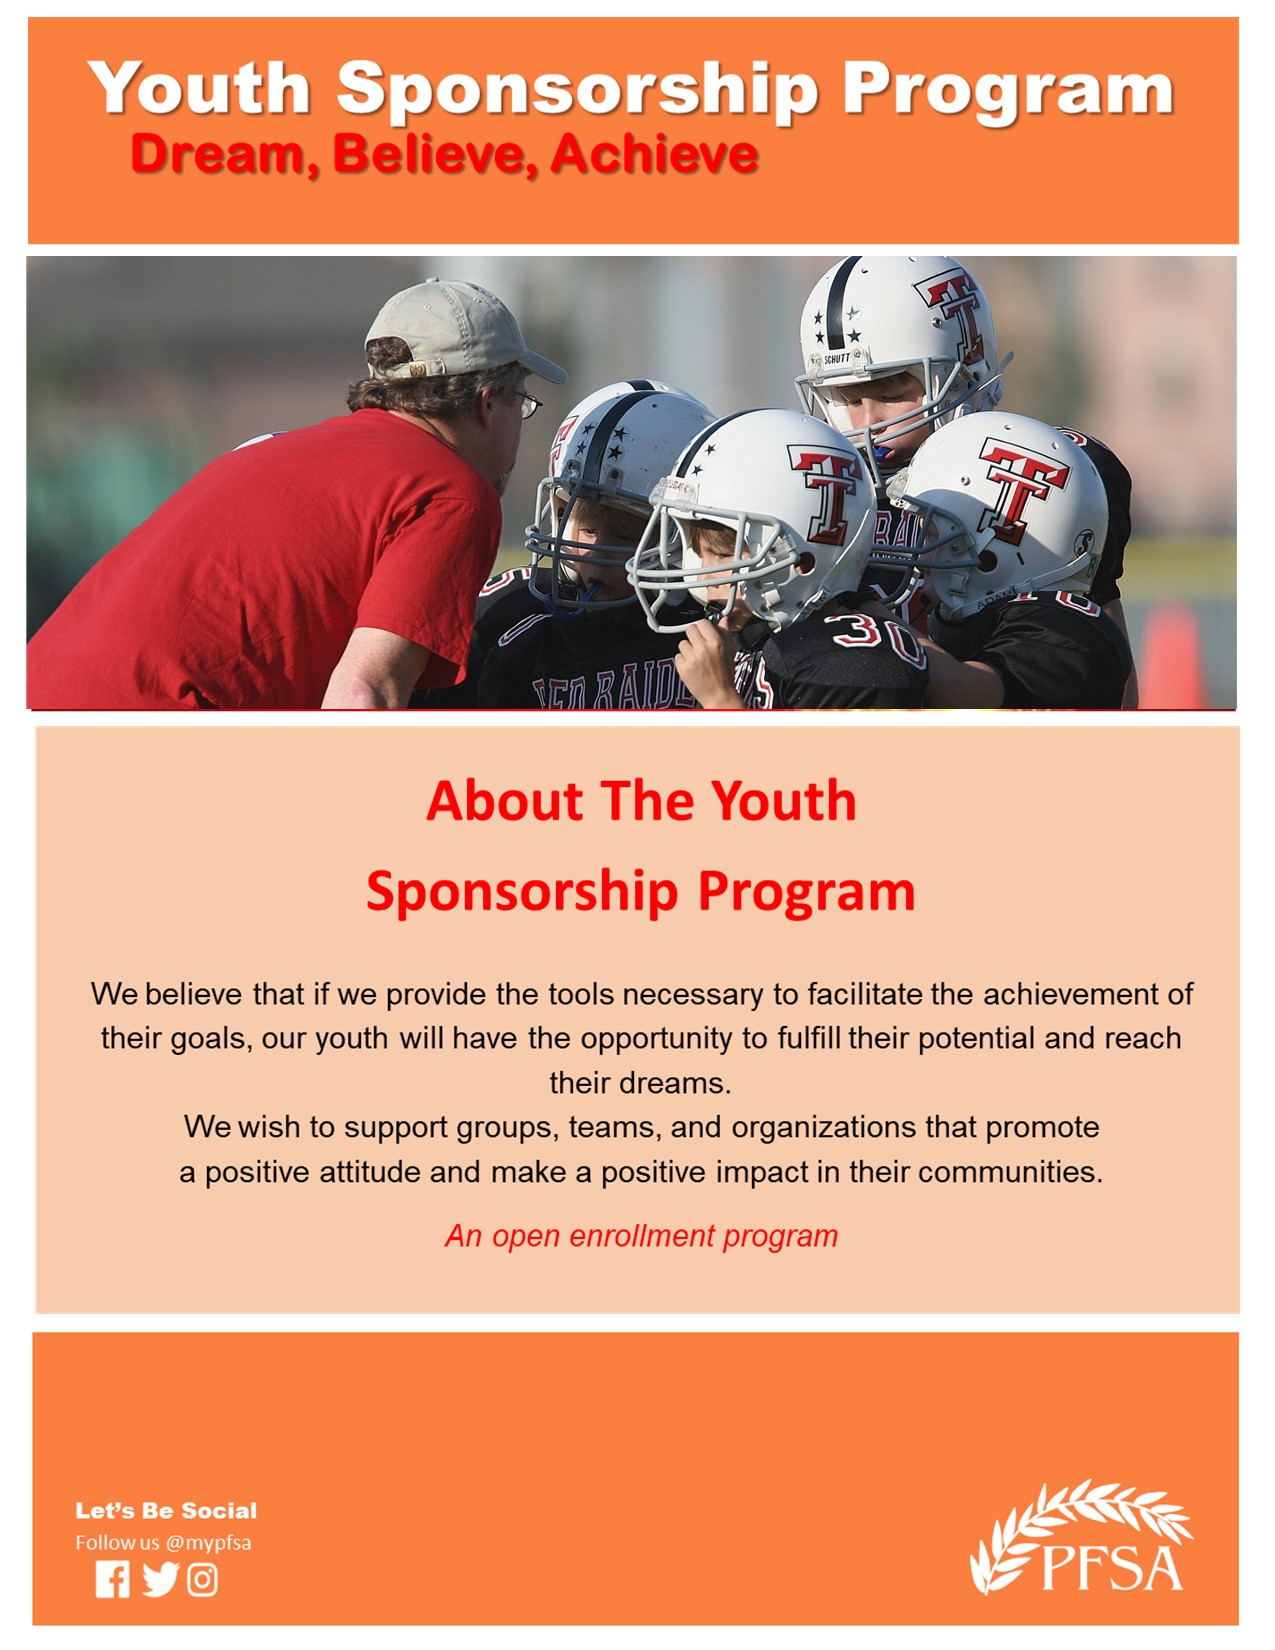 PFSA Youth Activity Sponsorship Program Application 2020-Draft